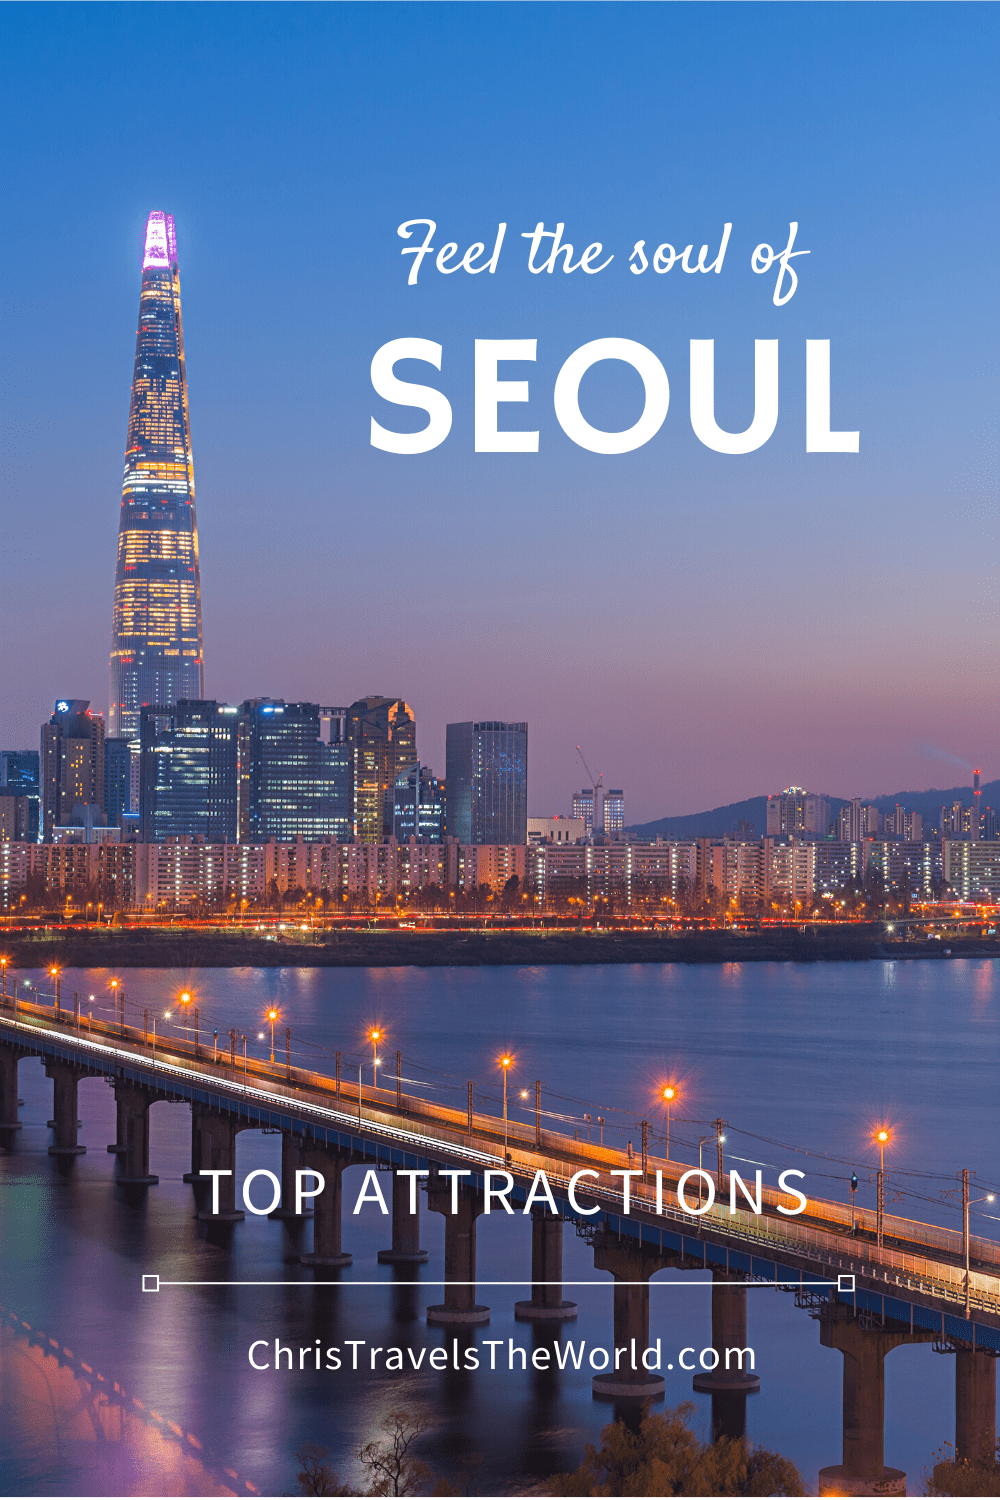 Feel the soul of Seoul